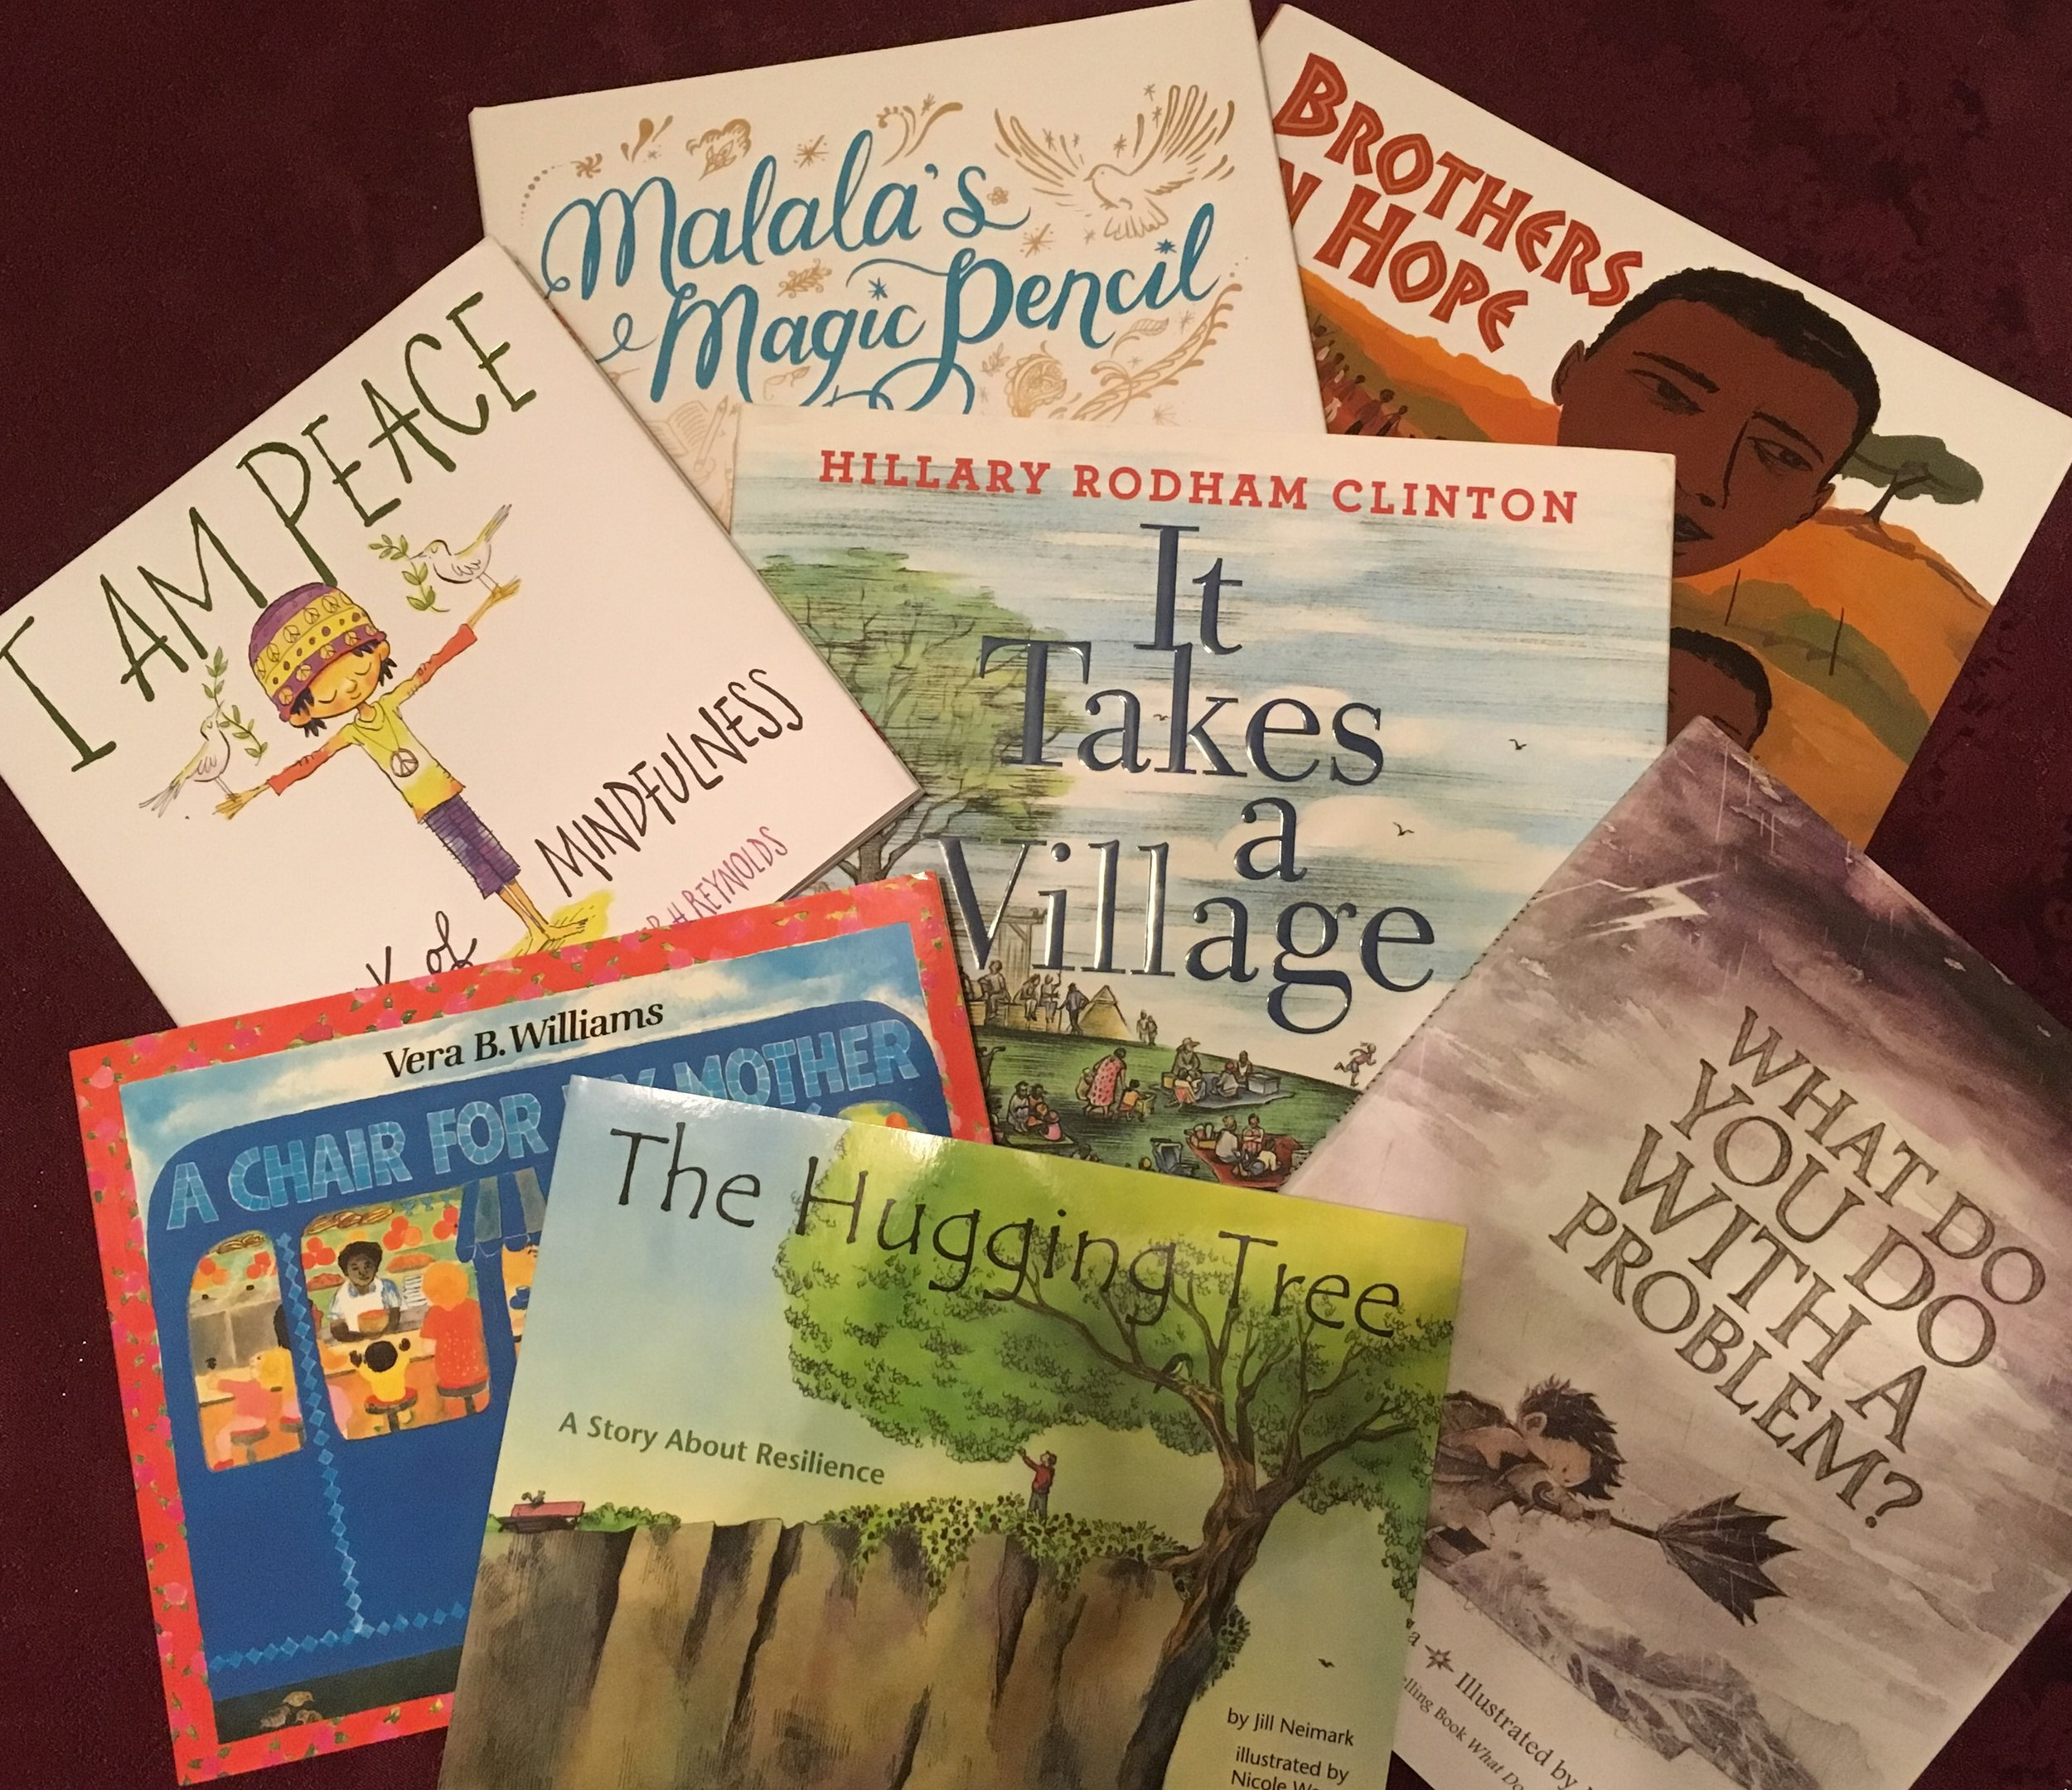 Why Picture Books? - Picture books are powerful and they are full of endless teaching and learning possibilities. Let's look at the metaphor